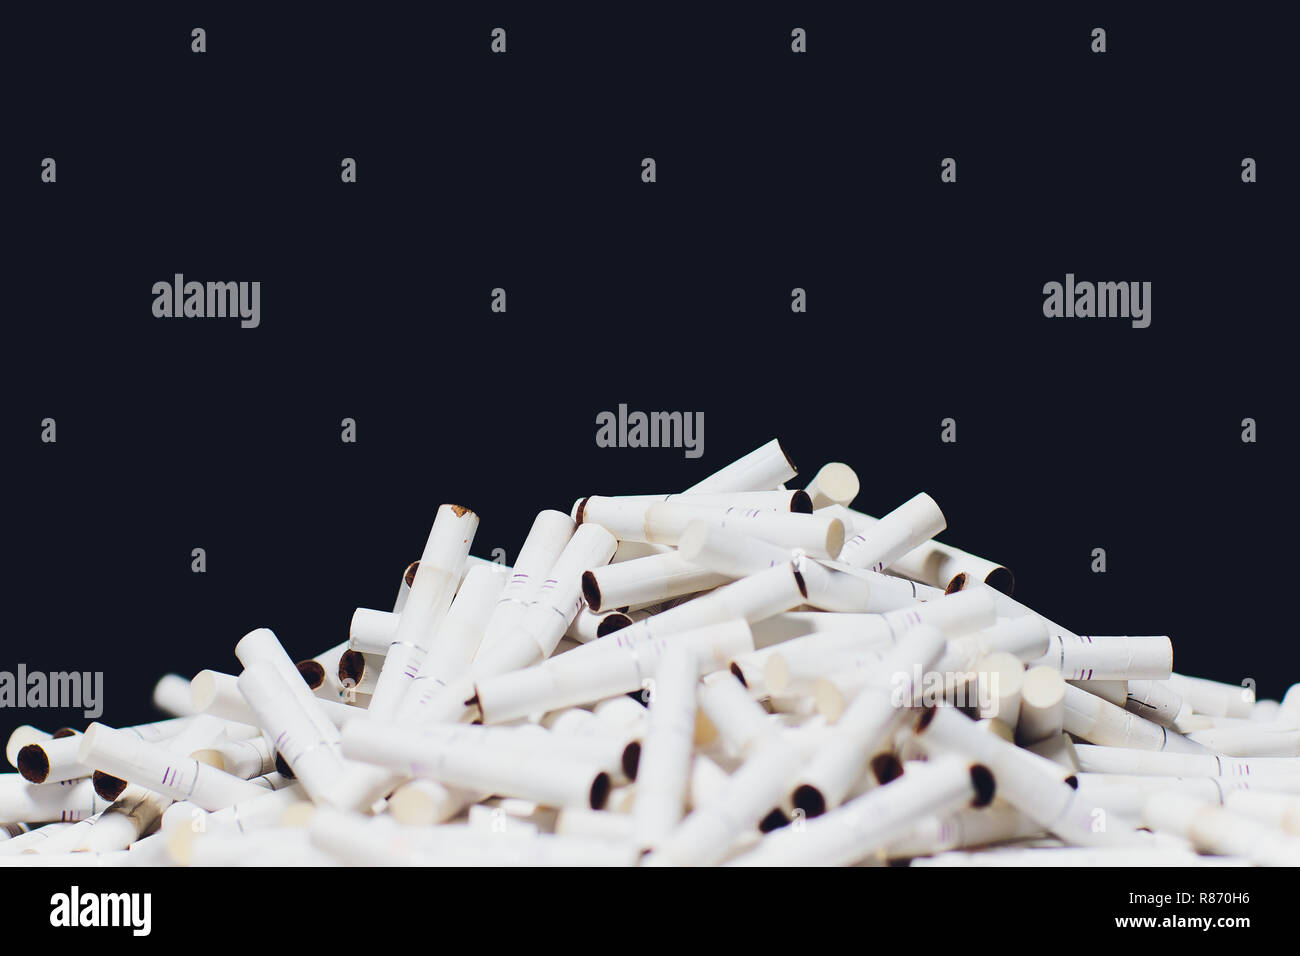 Newest electronic cigarettes, heating tobacco system IQOS, smoking, dark blue isolated on black background. mountain of used cigarettes, sticks - Stock Image